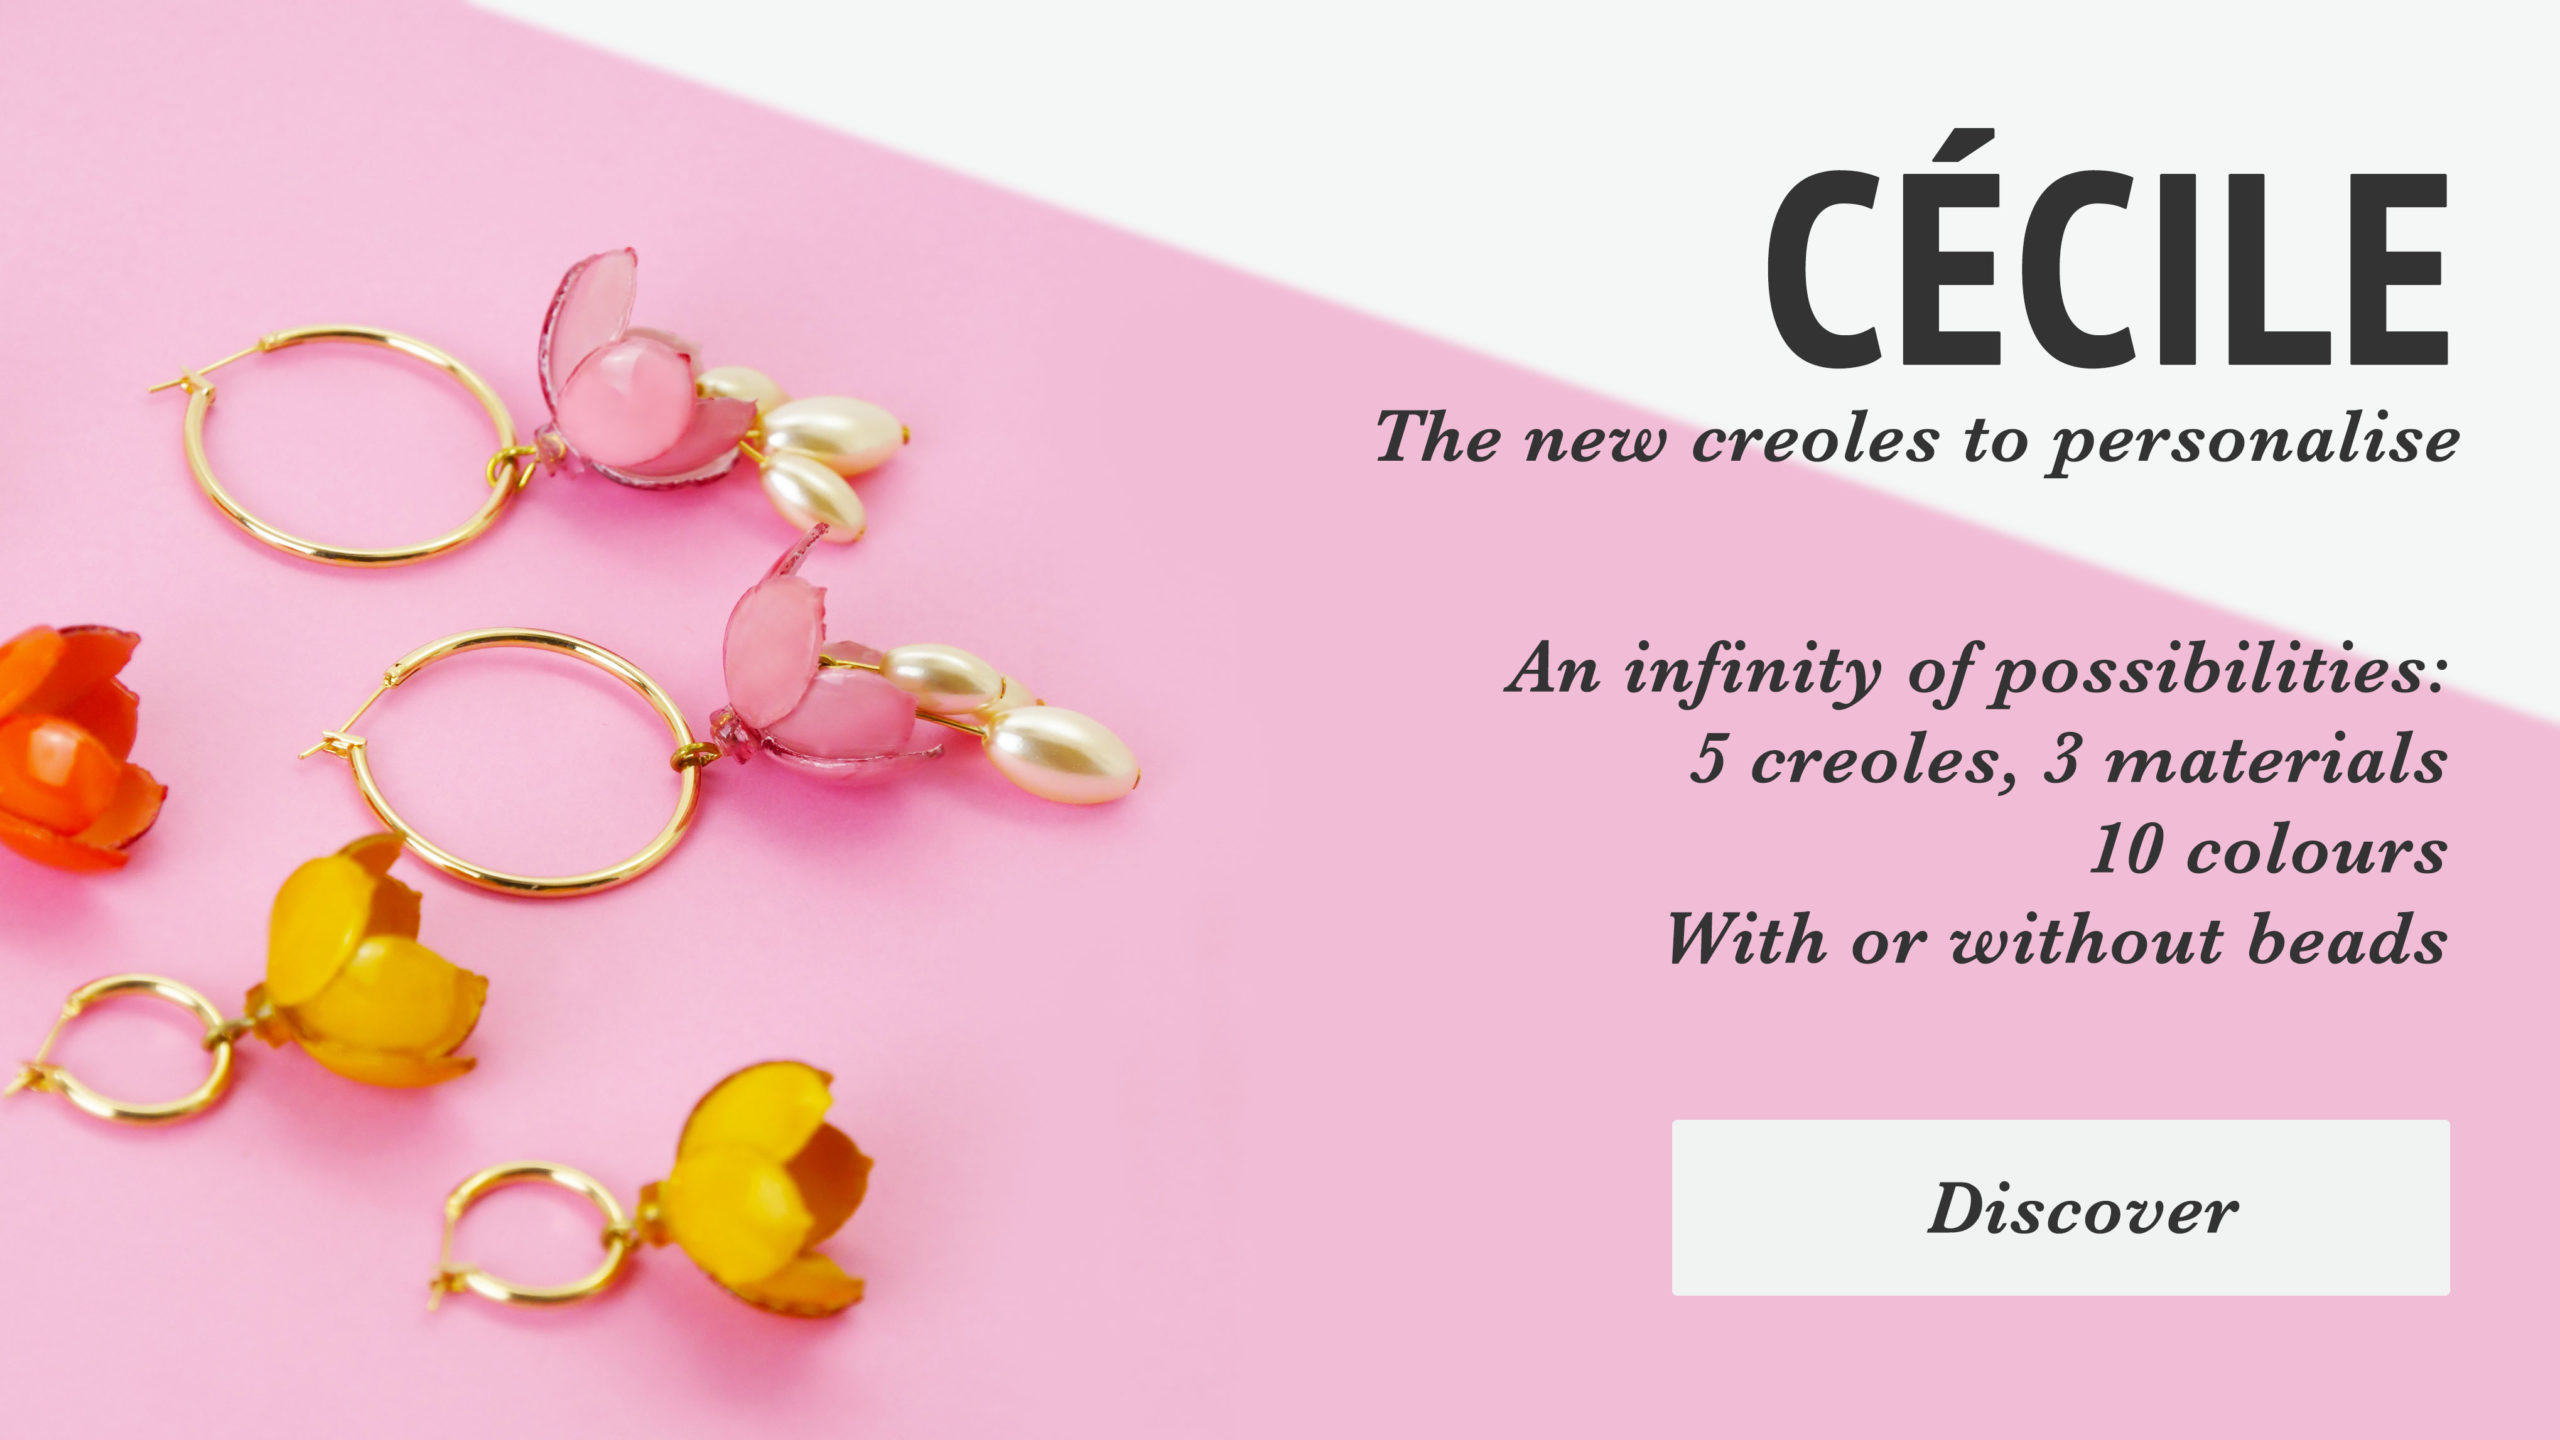 Cecile, the new hoop to personalise